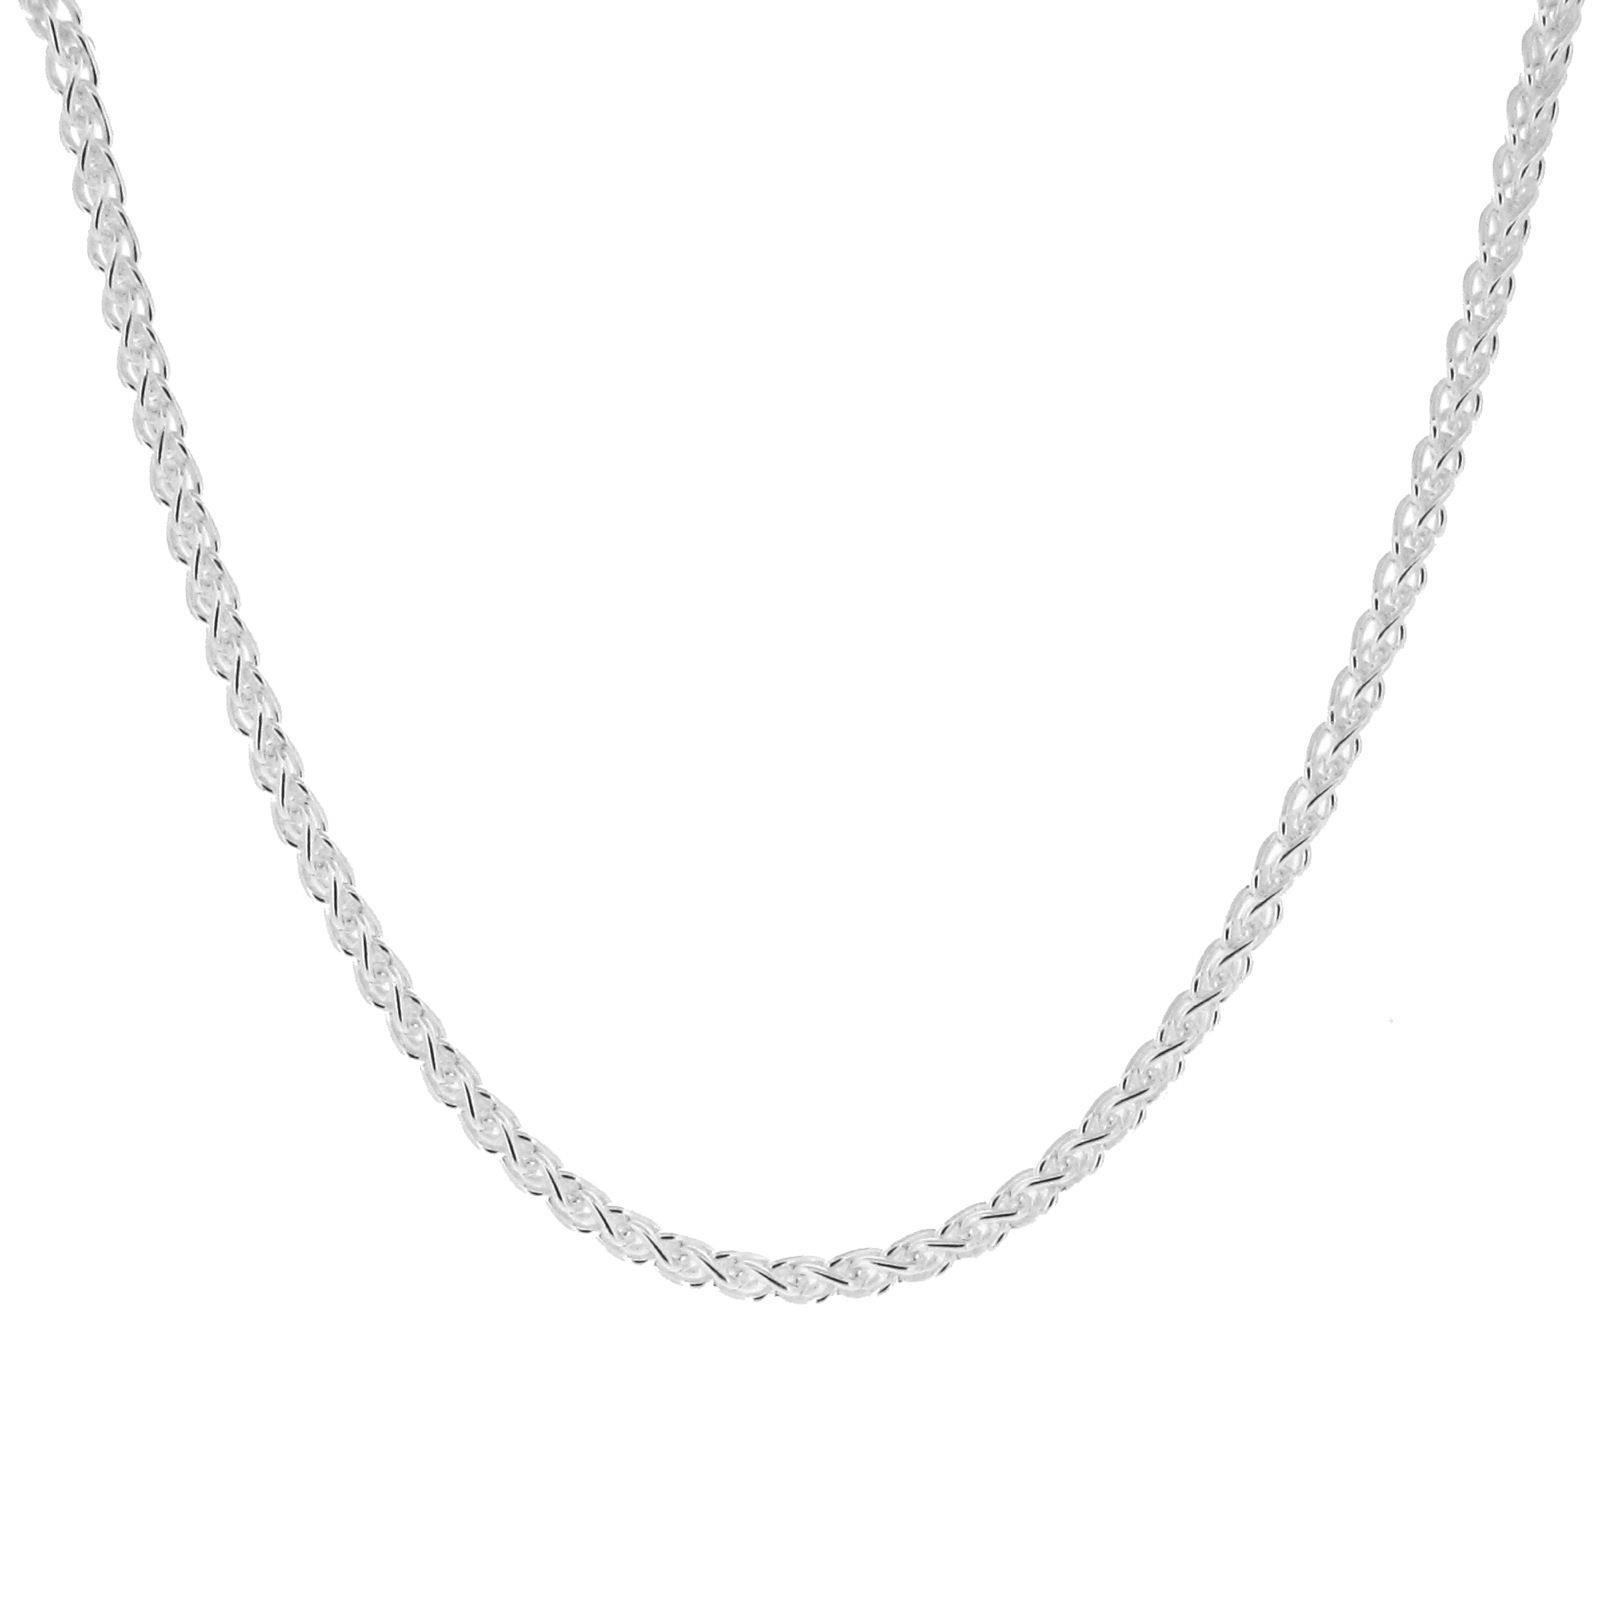 Italian made Organically E-coated 925 Sterling Silver 1.8mm Spiga Wheat Chains